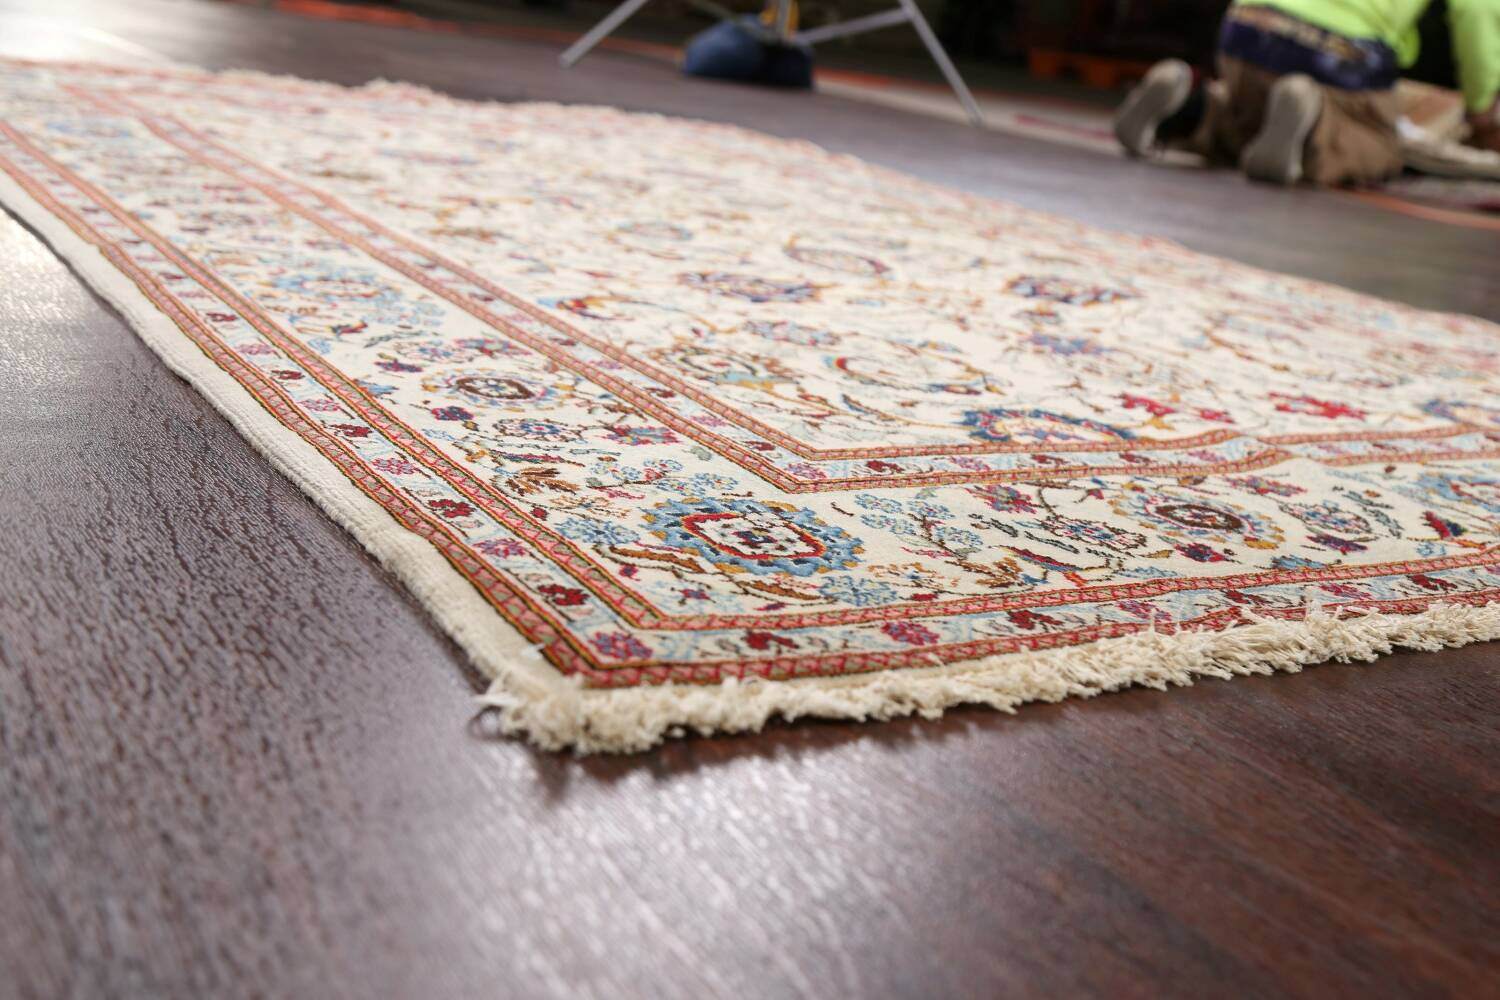 100% Vegetable Dye Floral Kashan Persian Area Rug 4x7 image 5